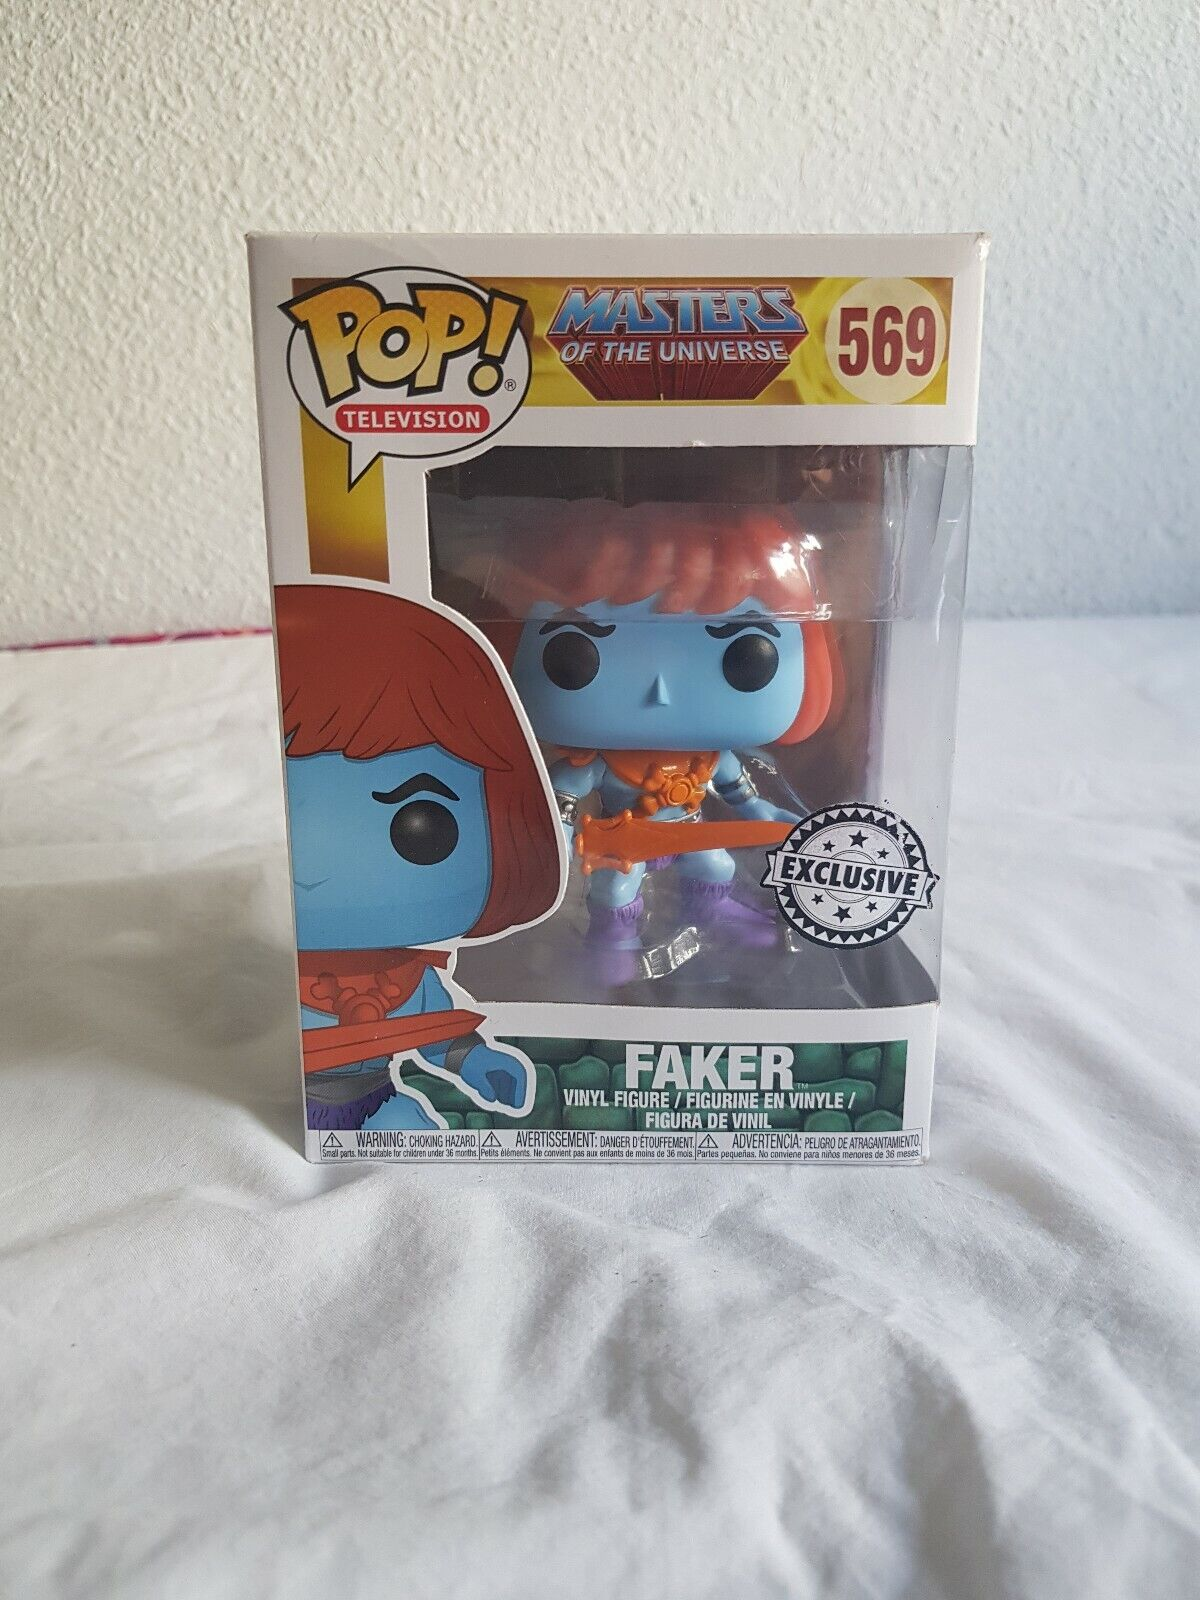 FUNKO POP MASTERS OF THE UNIVERSE FAKER  569 EXCLUSIVE RETIrot BOX DAMAGE VYNIL